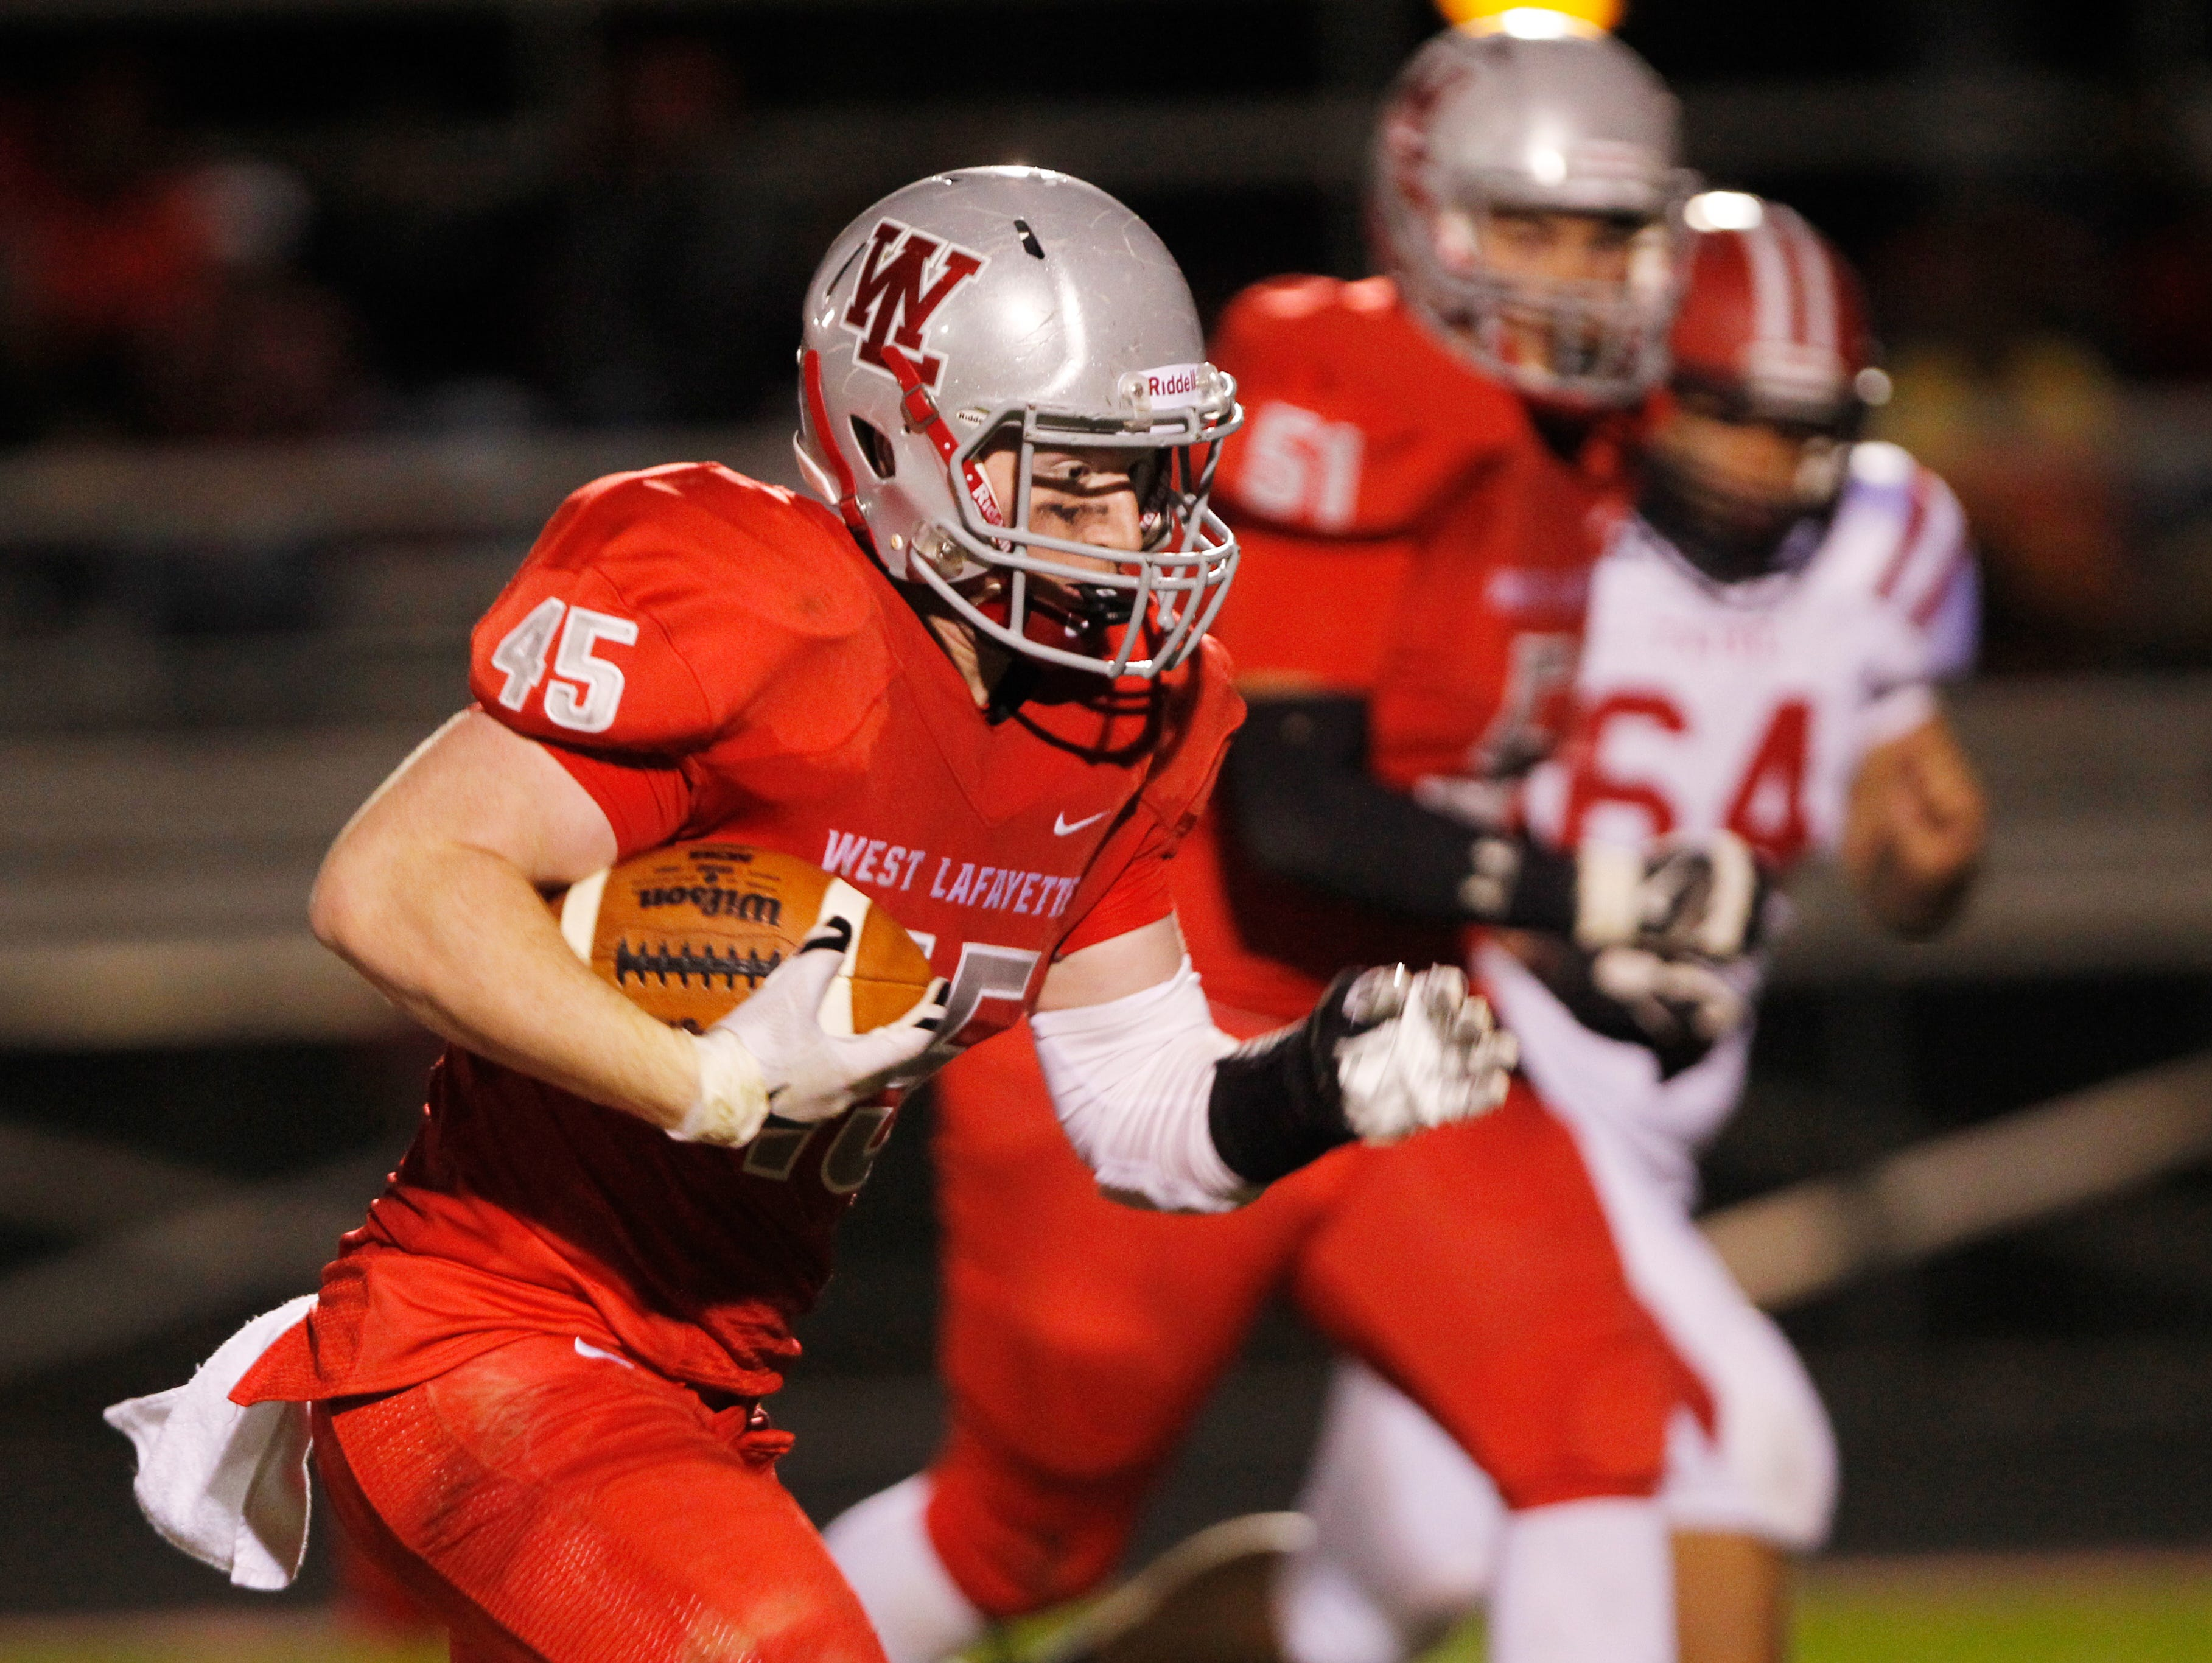 West Lafayette's Nate Merriott returns an interception for a touchdown at 10:59 in the third quarter against Twin Lakes Friday, October 9, 2015, in West Lafayette. Merriott's score put West Lafayette up 21-6. West Lafayette would go on to defeat Twin Lakes 56-6.